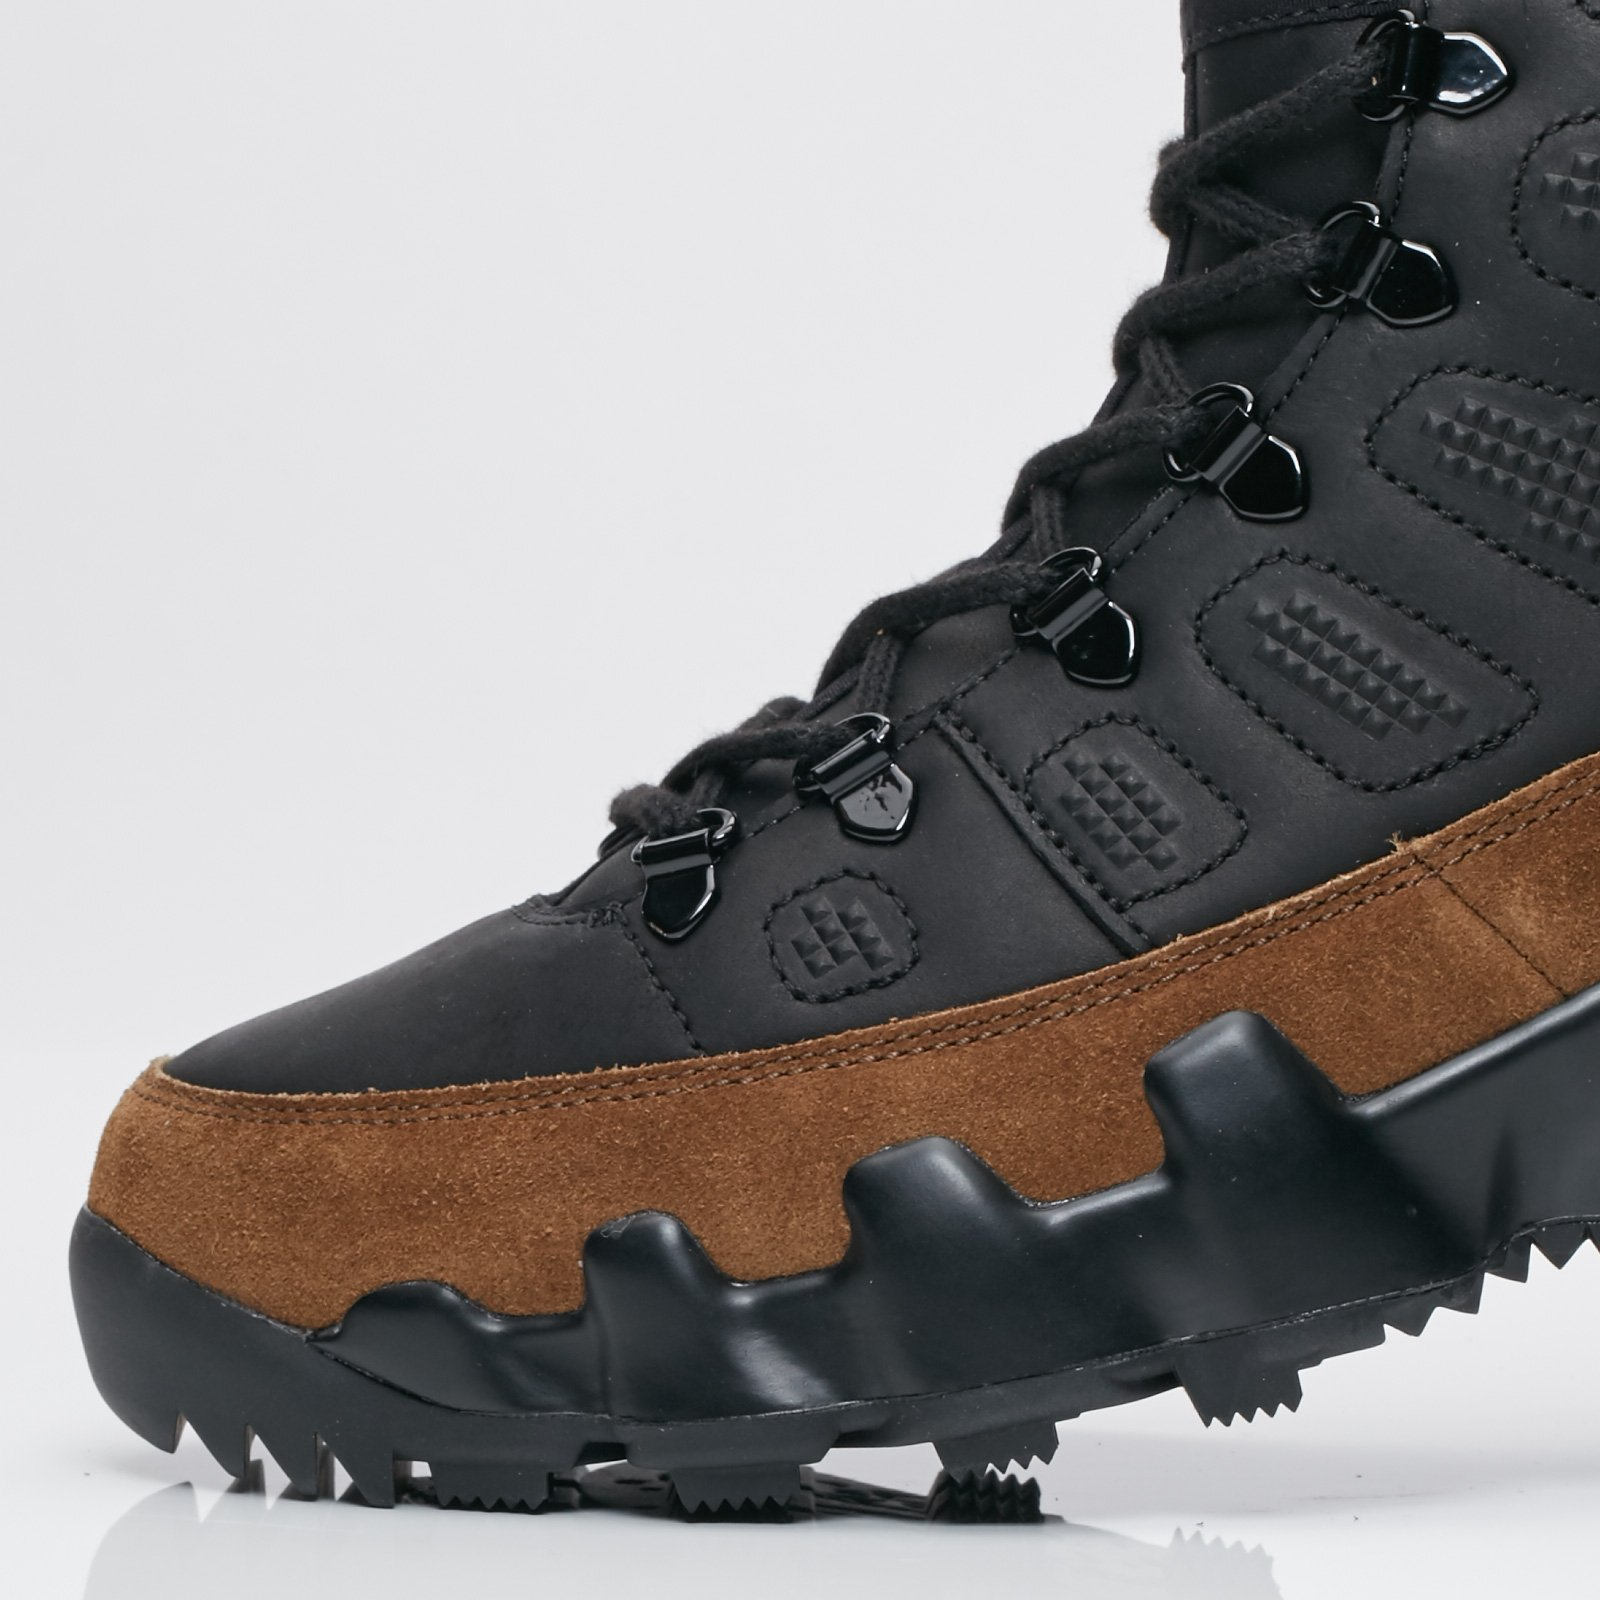 on sale a16fb 1fba1 Jordan Brand Air Jordan 9 Retro Boot NRG - 6. Close